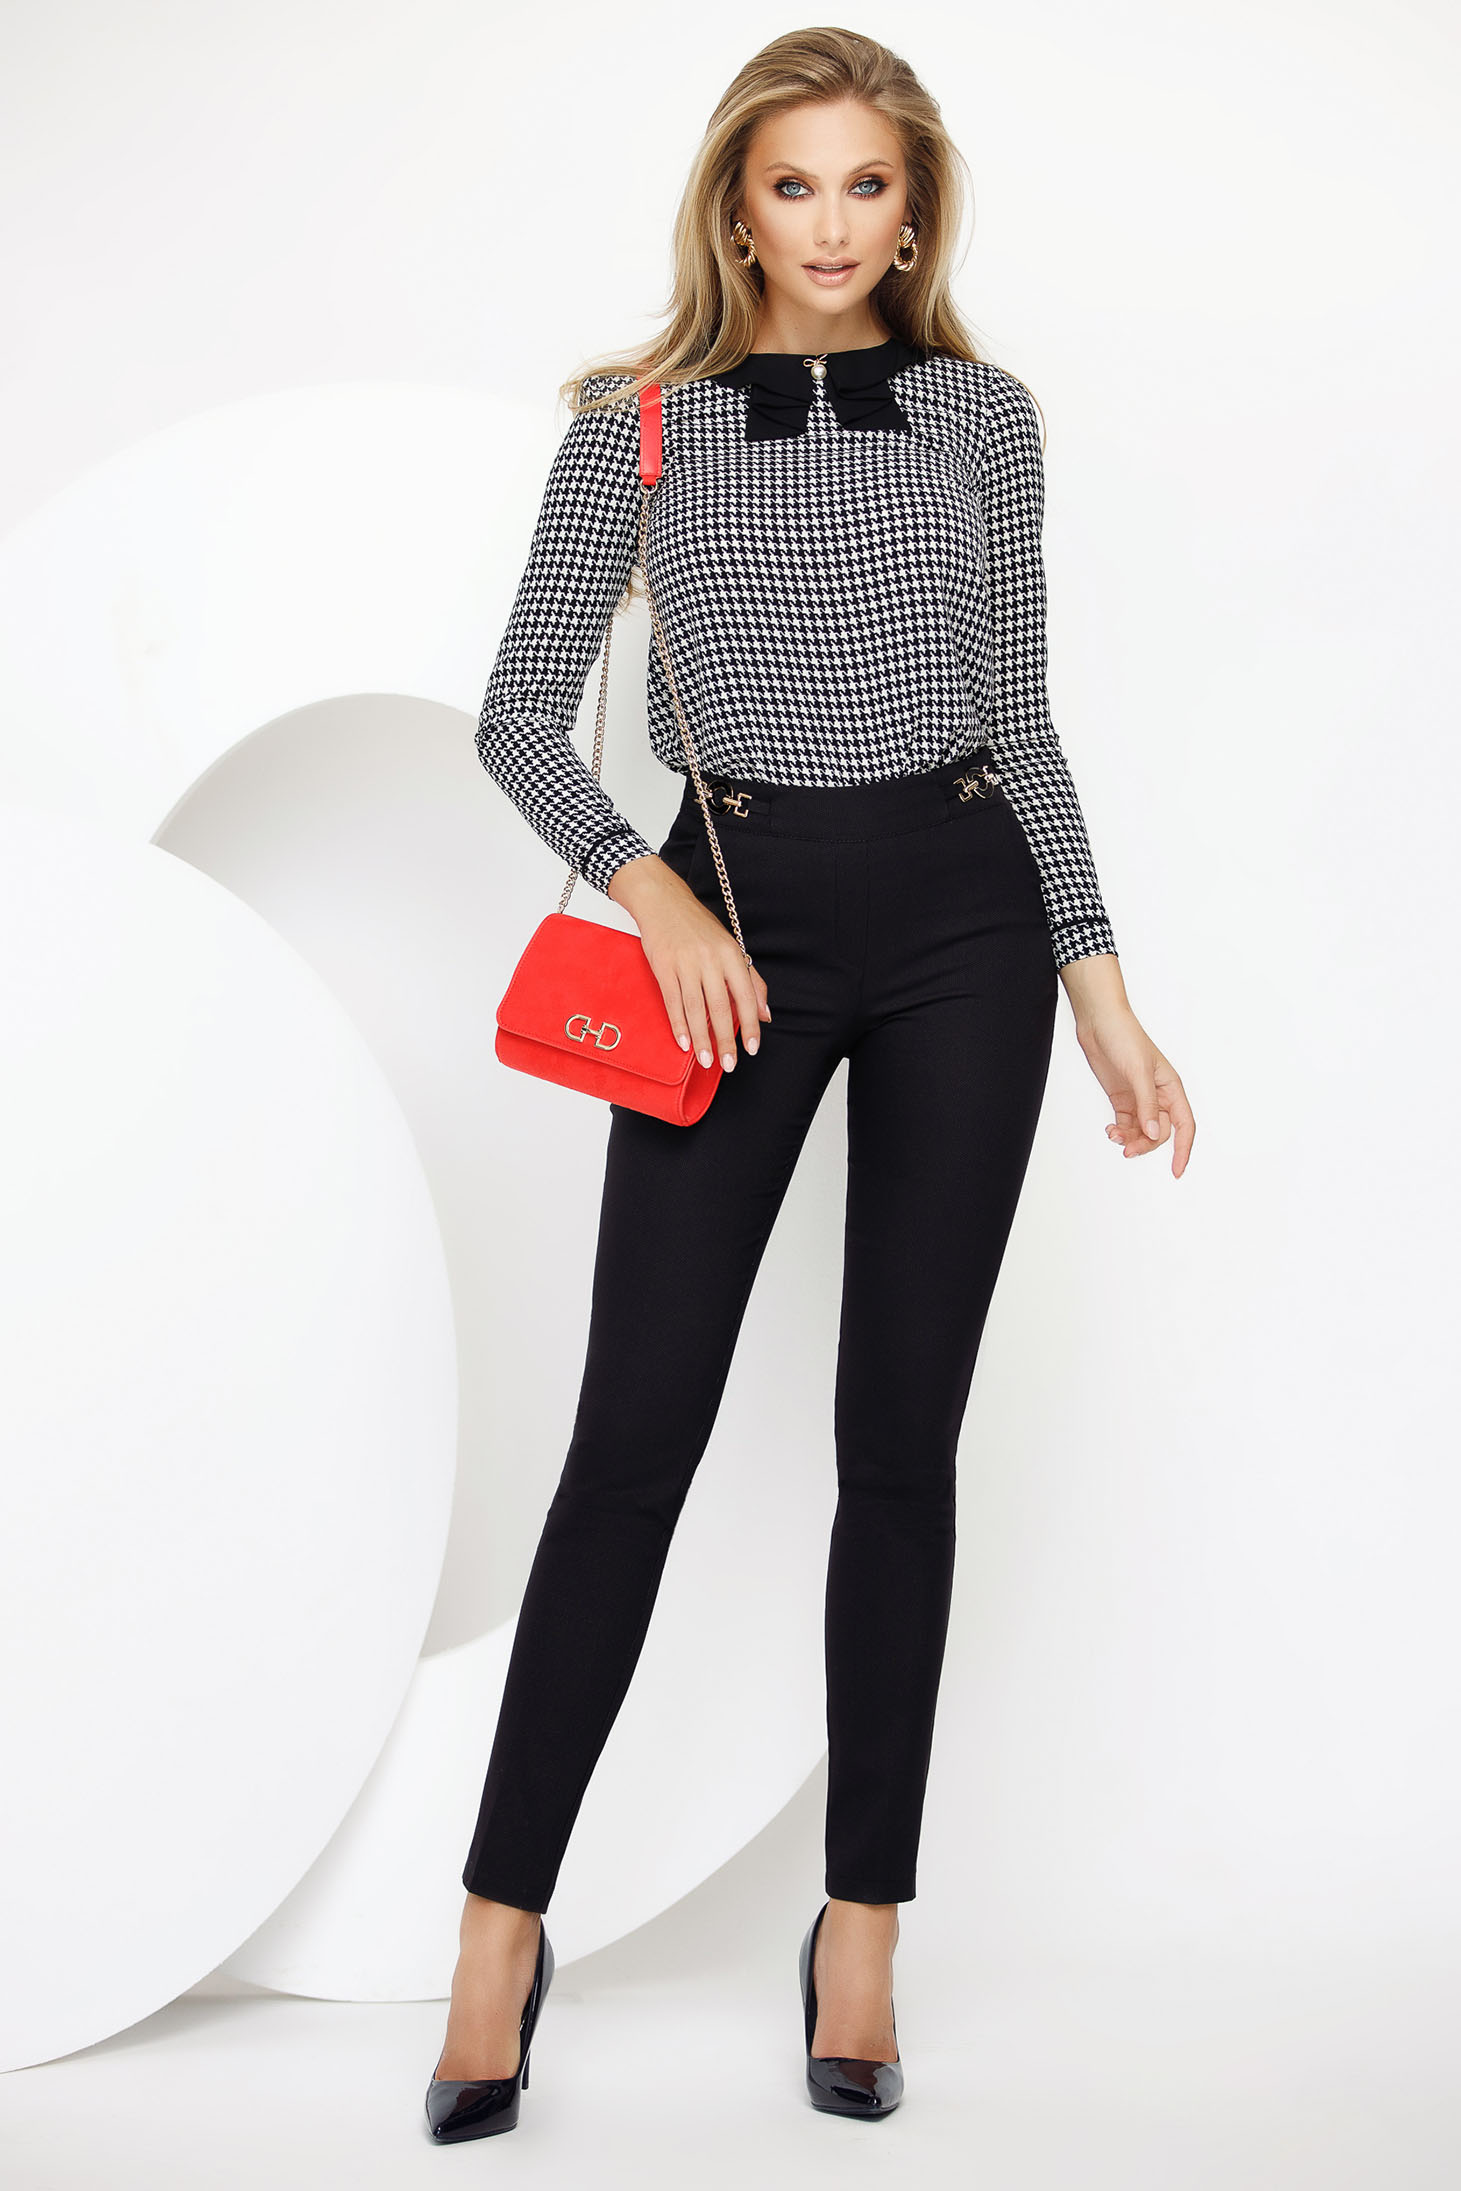 Trousers black office conical medium waist with metal accessories slightly elastic fabric